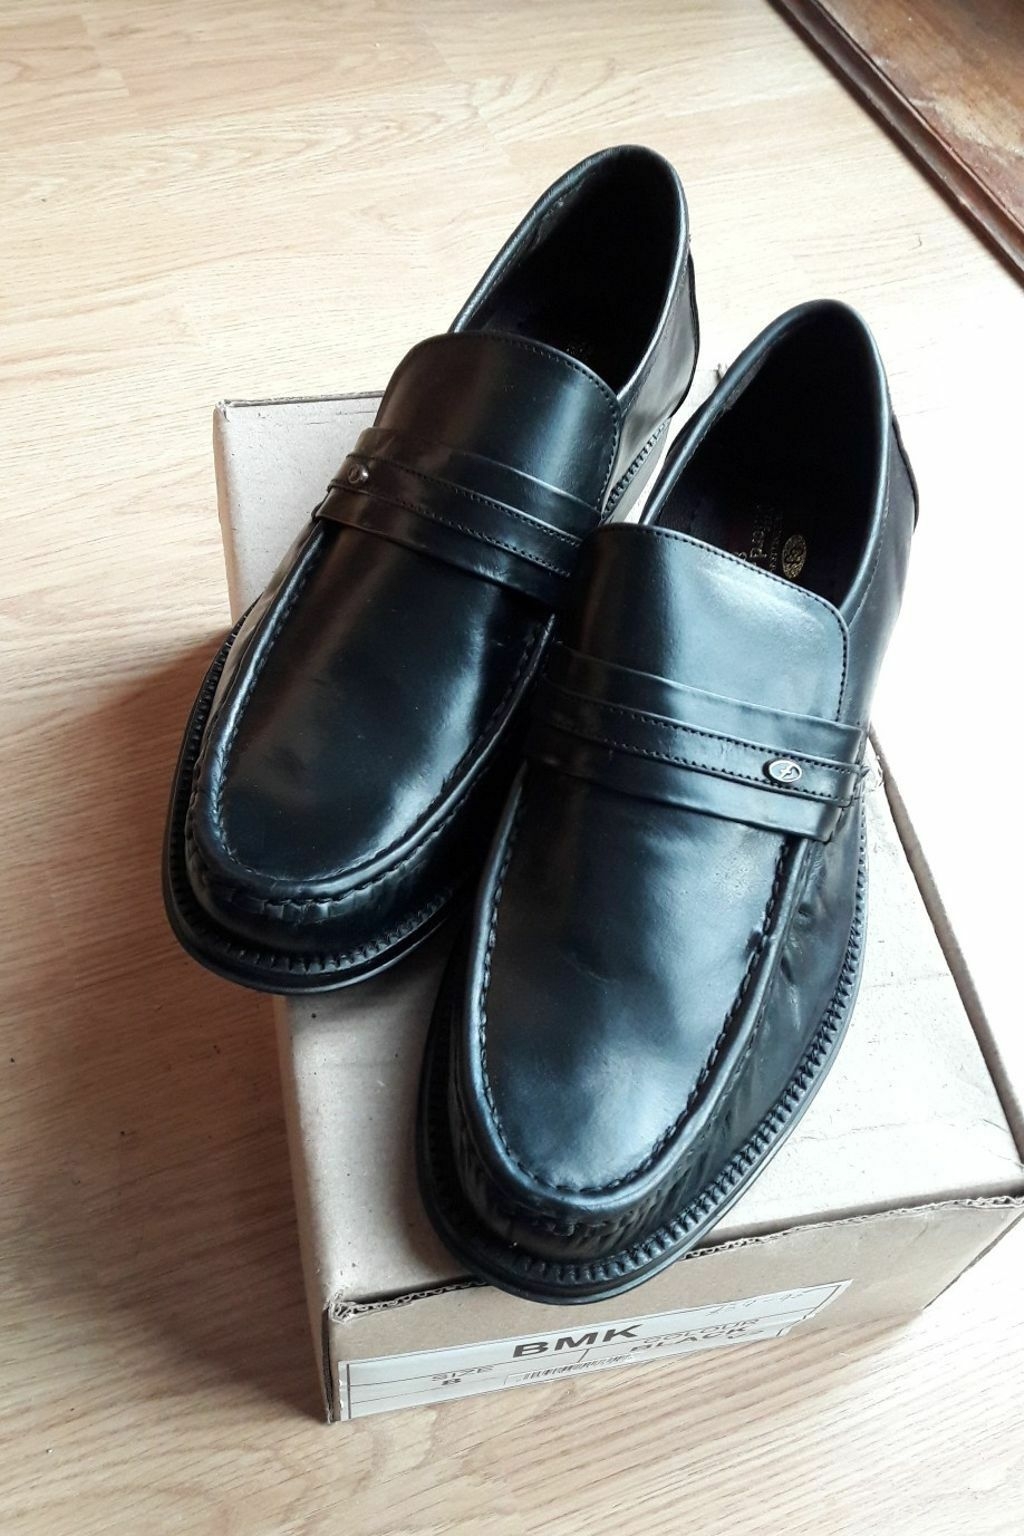 NEW by in box Size 8 Mens black slip-on shoes by NEW Clifford James Leather uppers f545dd